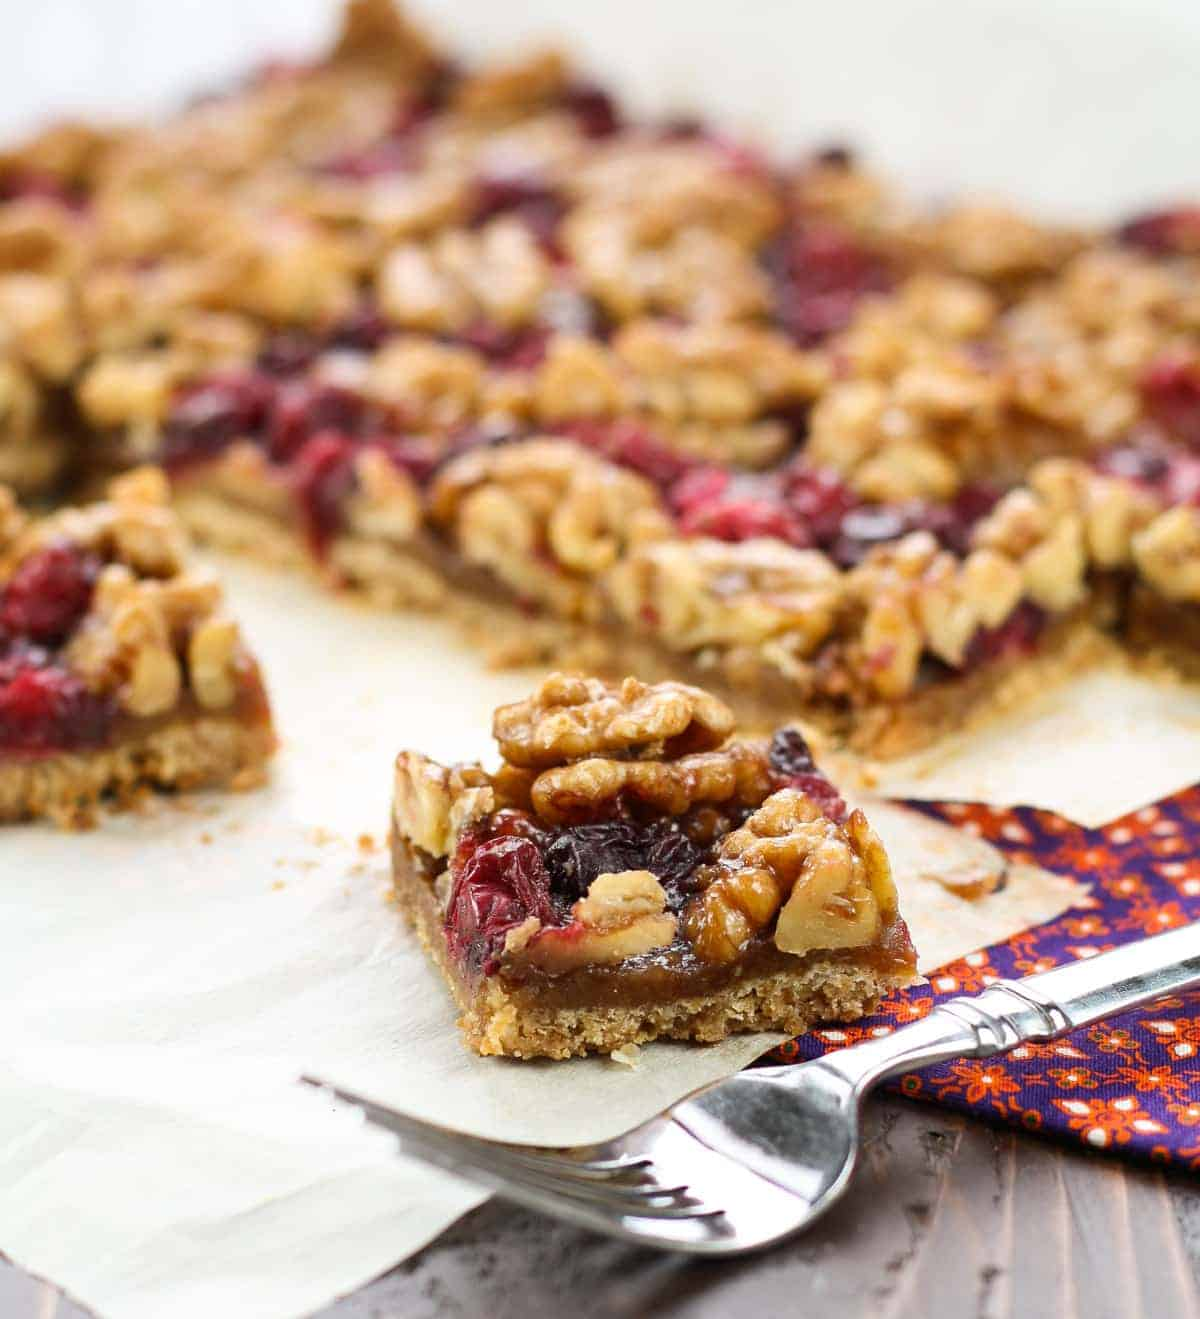 Need a holiday dessert for friends & family? These Cranberry Walnut Bars are sinfully rich but super easy to pull together. They make great holiday gifts, too!